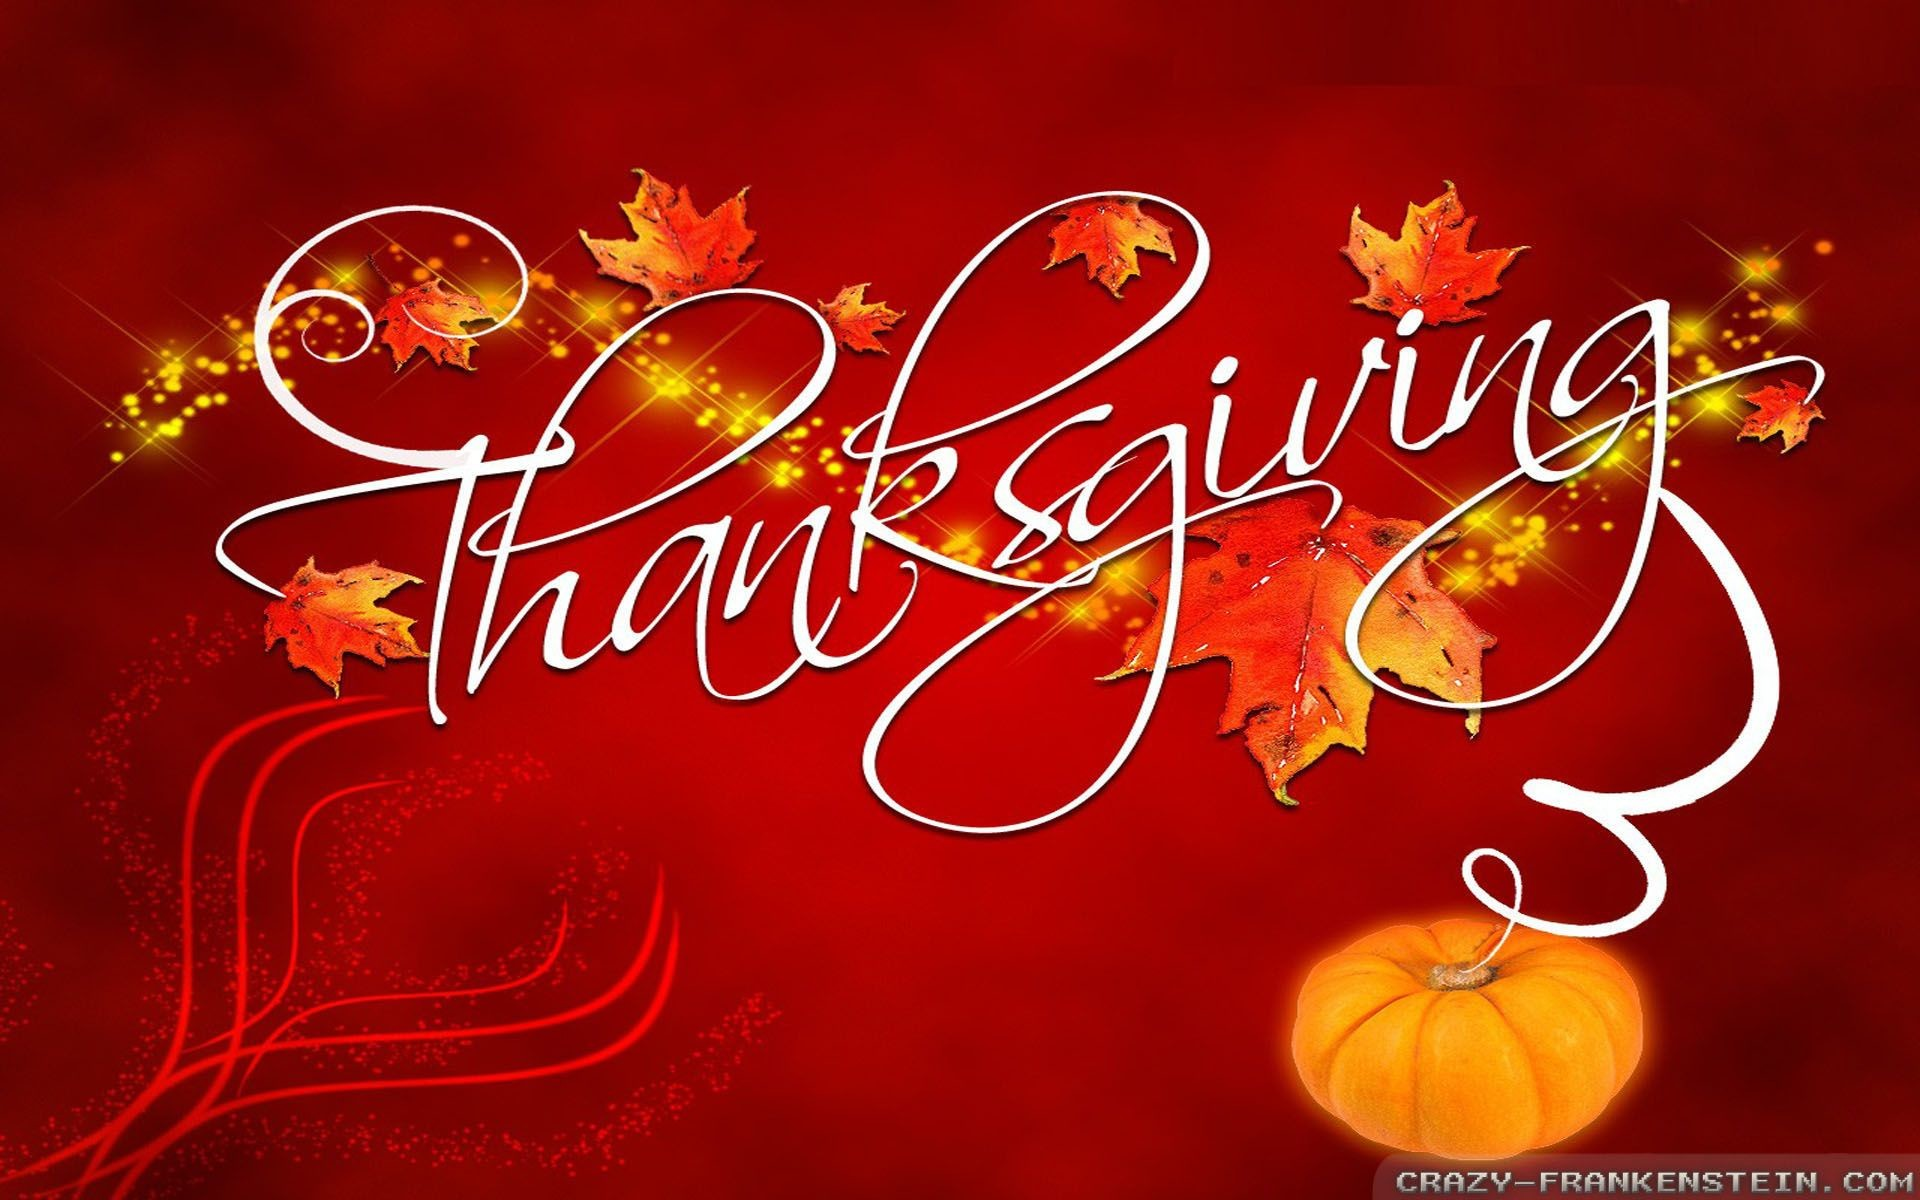 Res: 1920x1200, Thanksgiving wallpaper for Windows 7/8.1/10 | All for Windows 10 Free